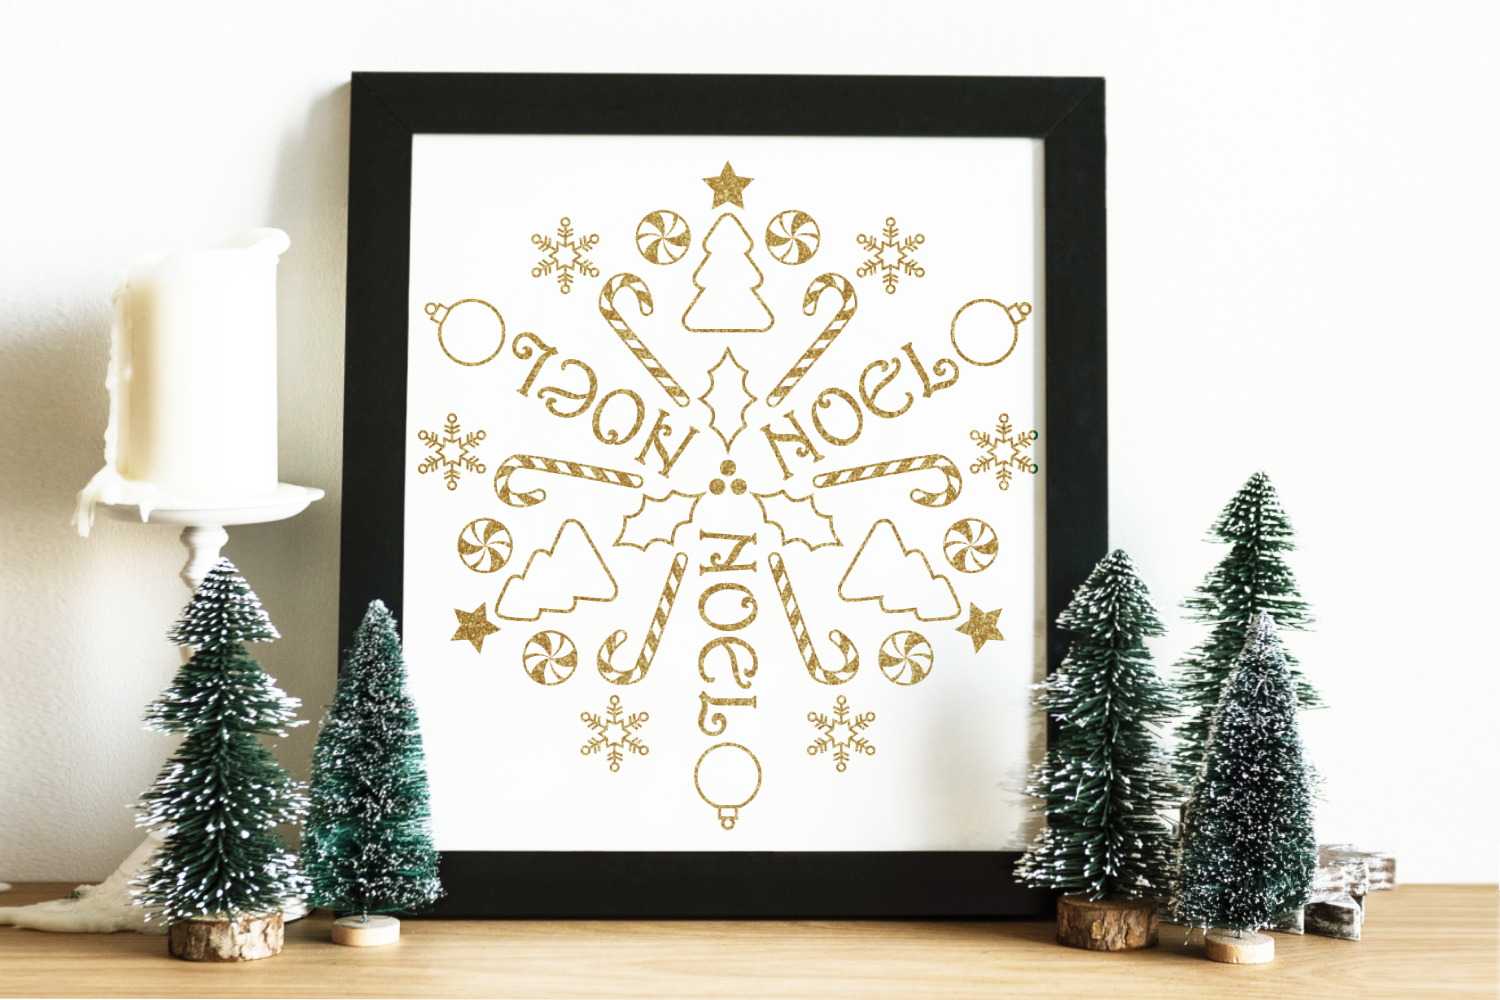 Download Free Circular Christmas Mandala Art Graphic By Risarocksit Creative for Cricut Explore, Silhouette and other cutting machines.